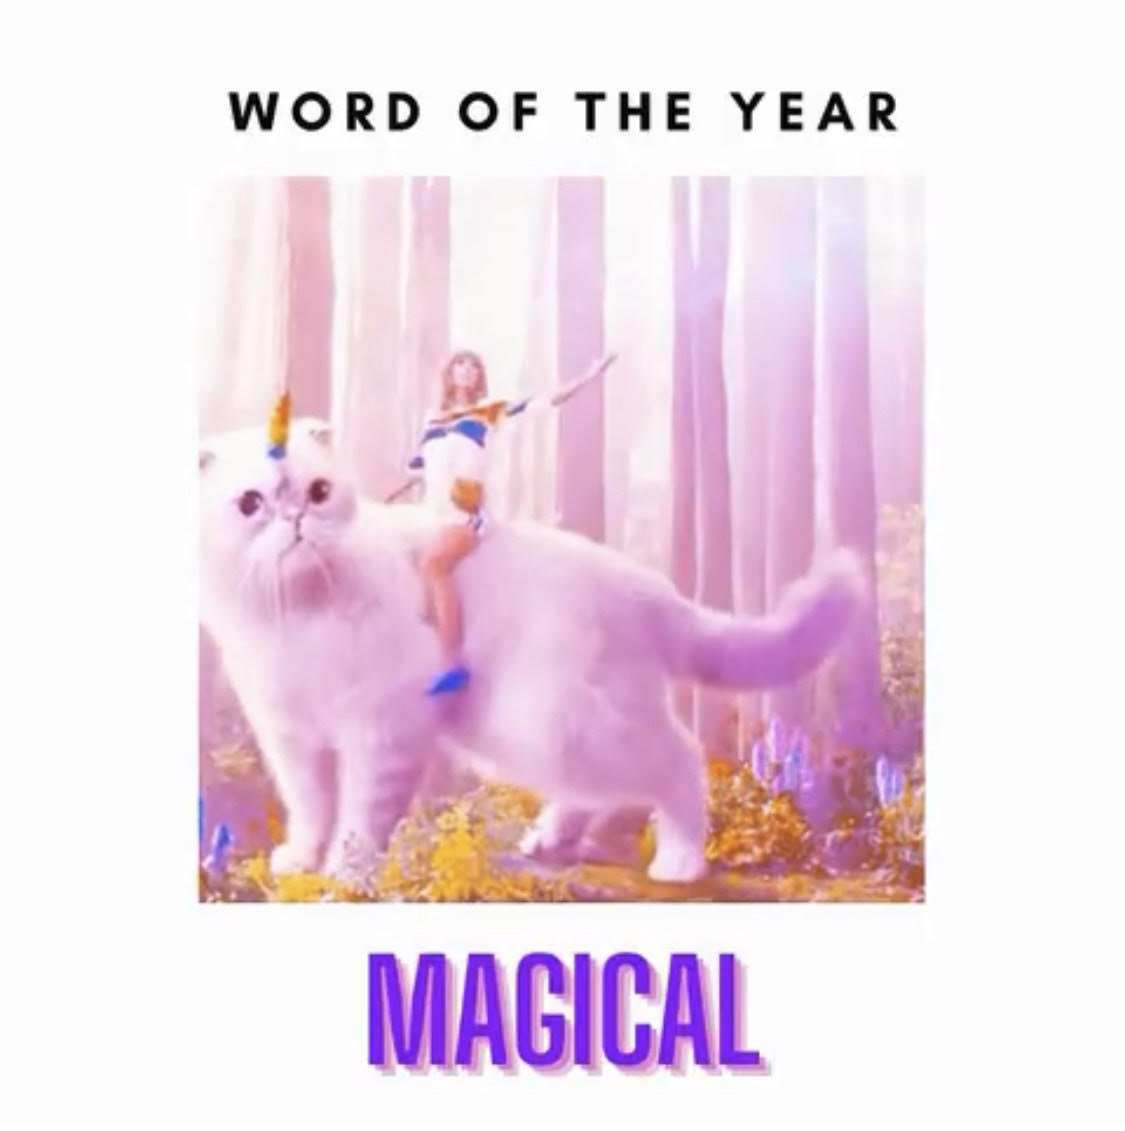 taylor swift on a unicorn cat is magical